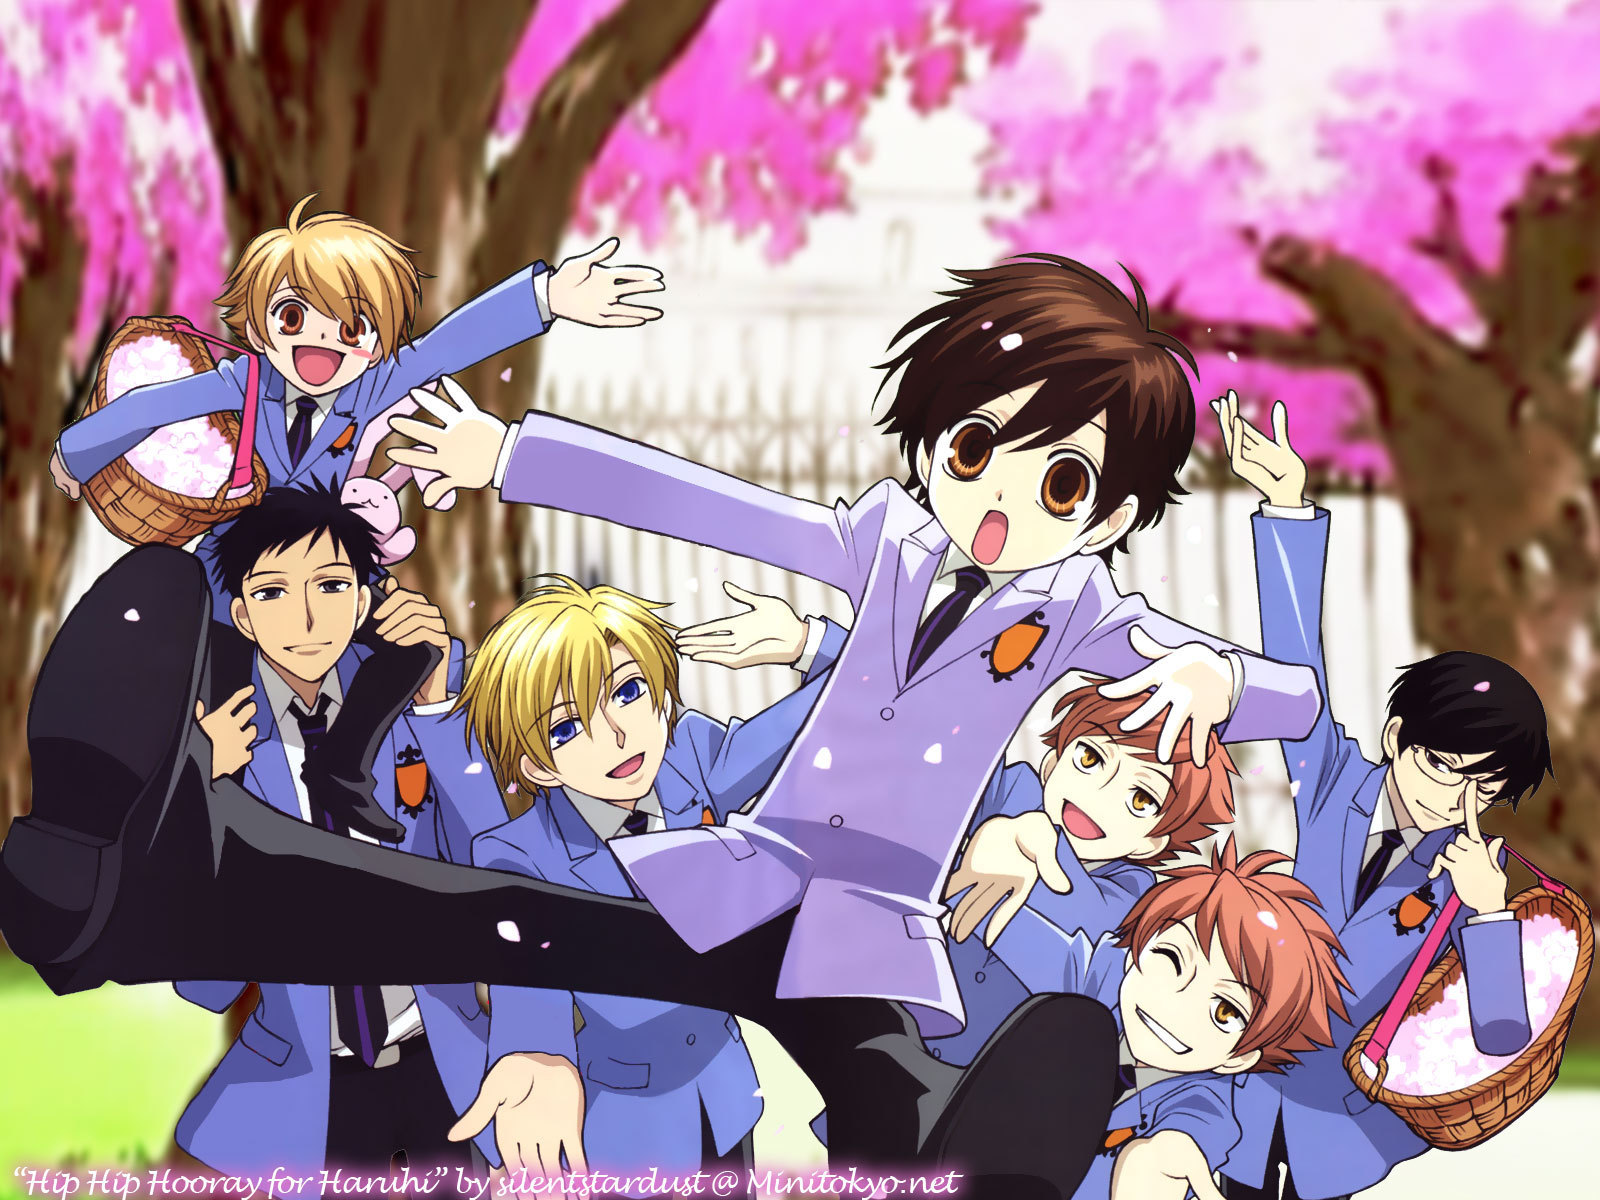 http://images2.fanpop.com/images/photos/2800000/host-Club-ouran-high-school-host-club-2812180-1600-1200.jpg